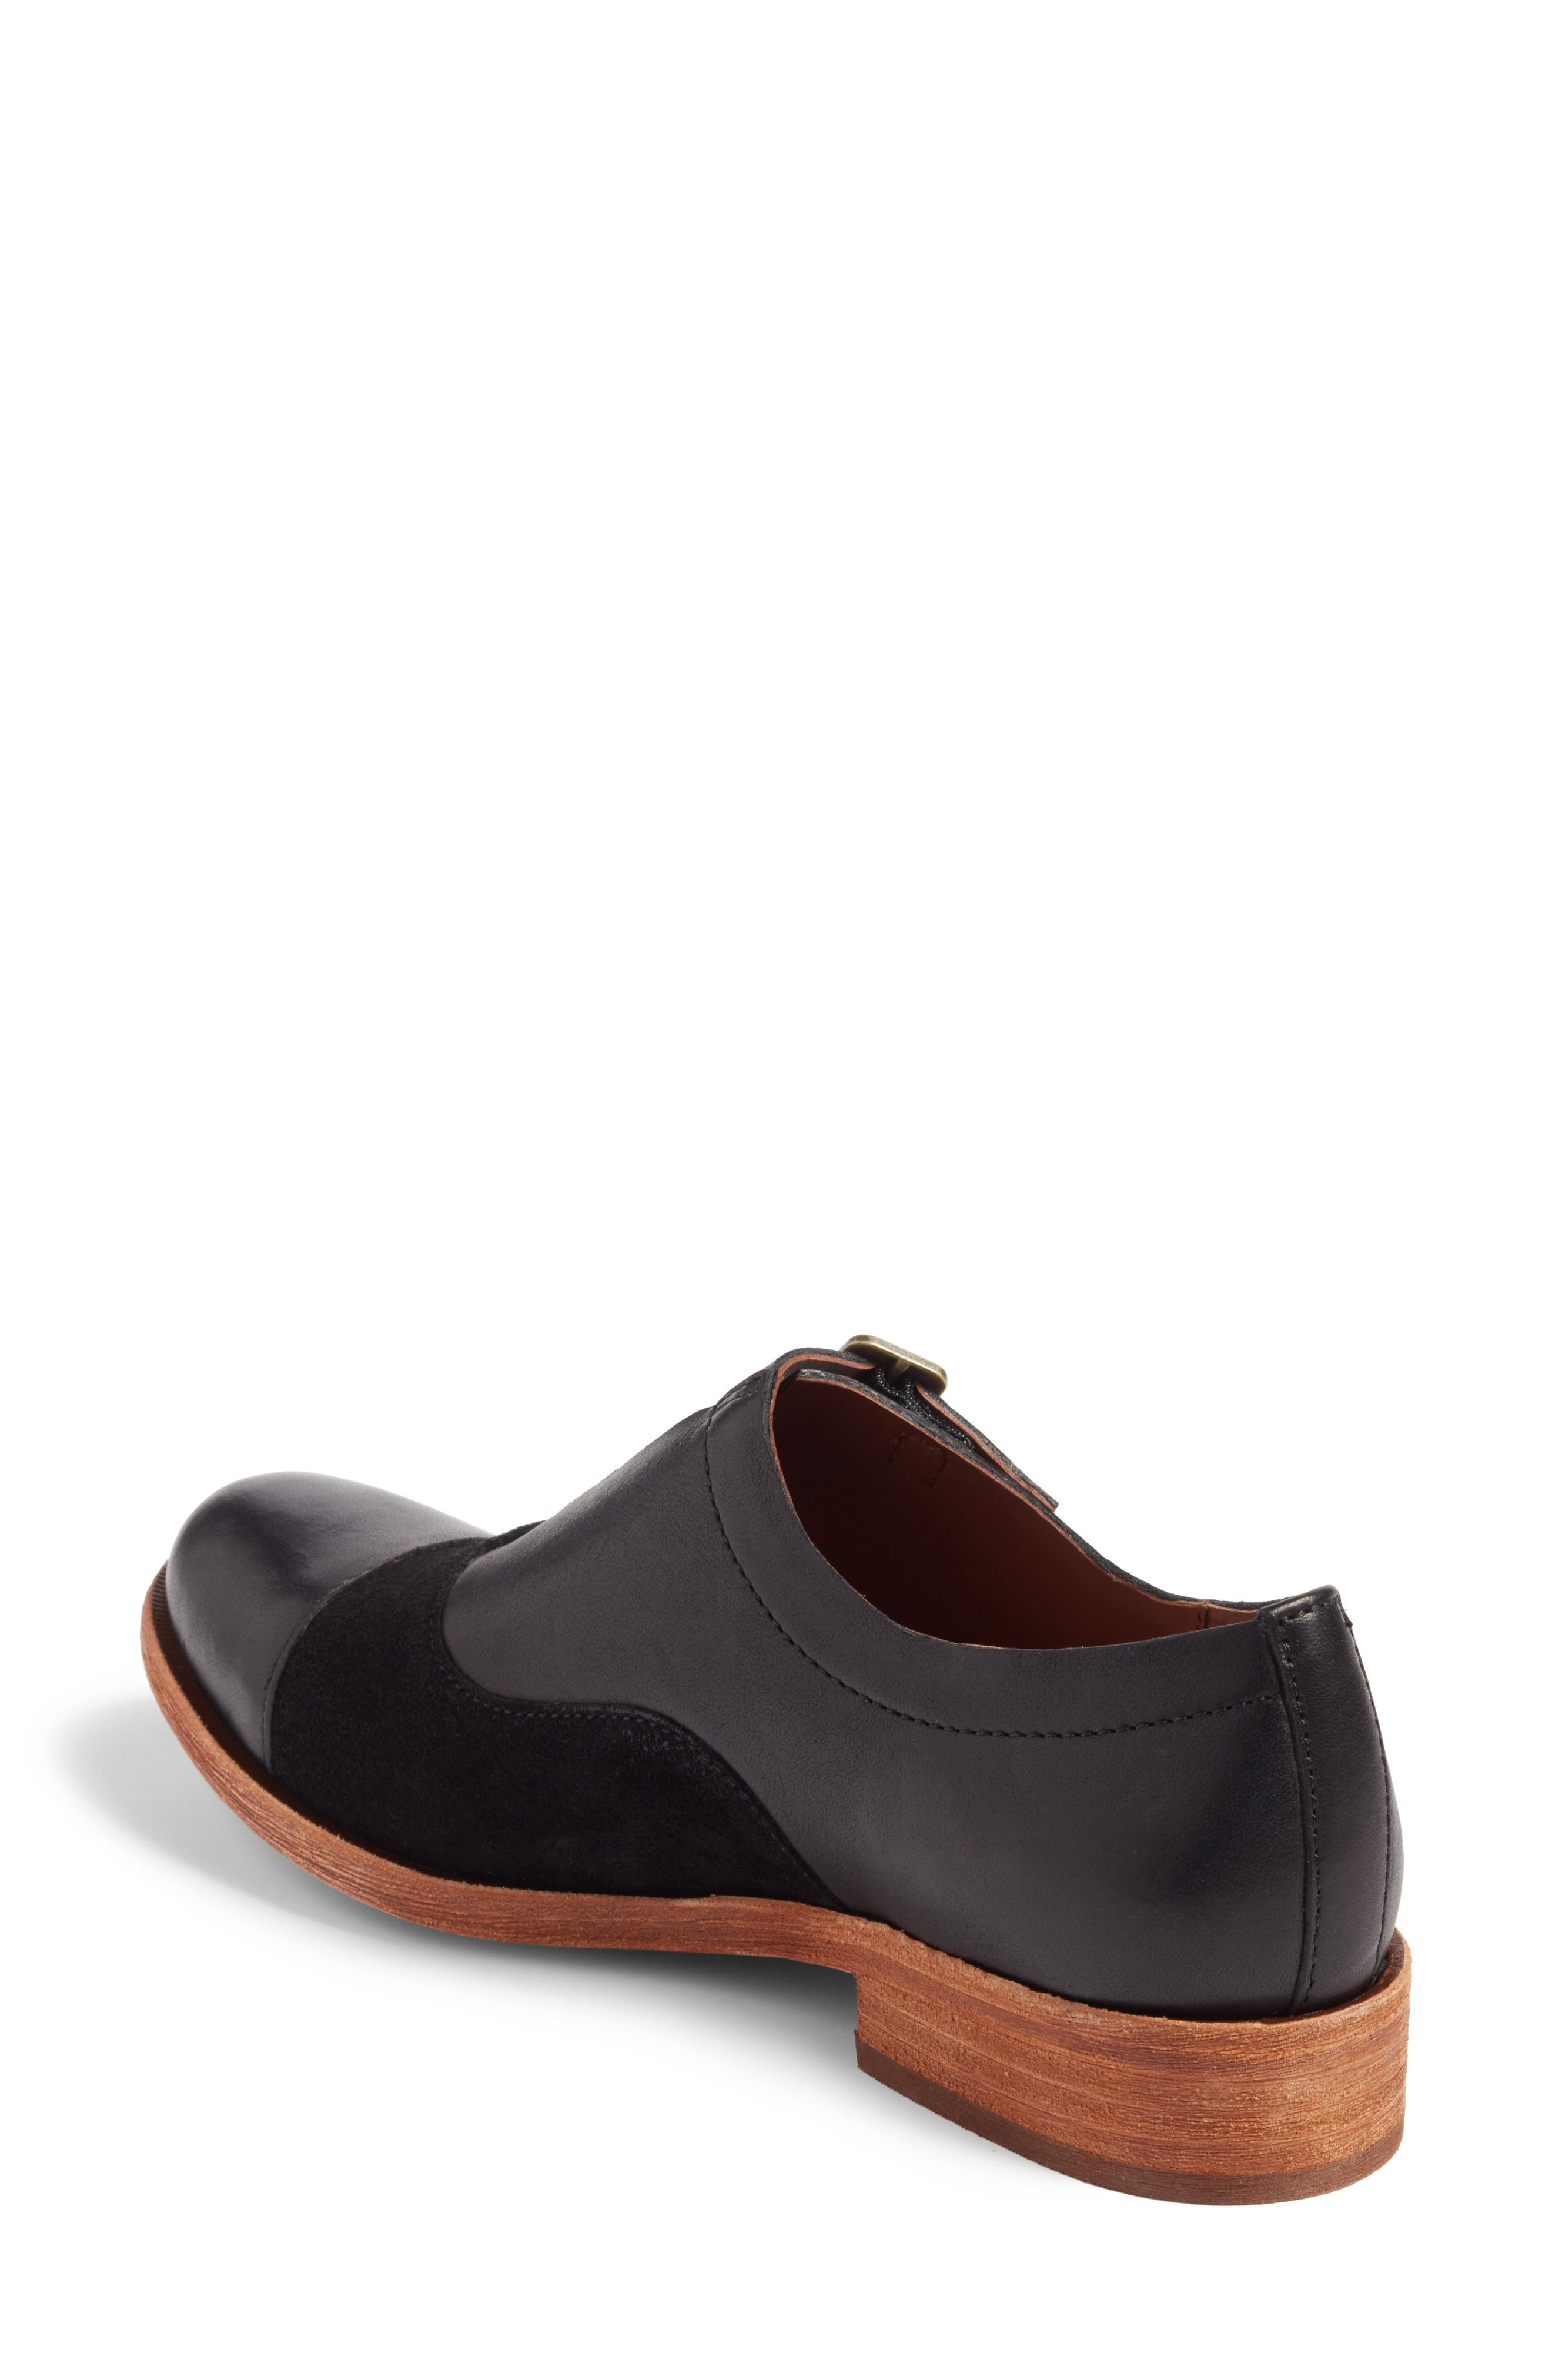 'Niseda' Oxford,                             Alternate thumbnail 2, color,                             Black Leather Suede Combo